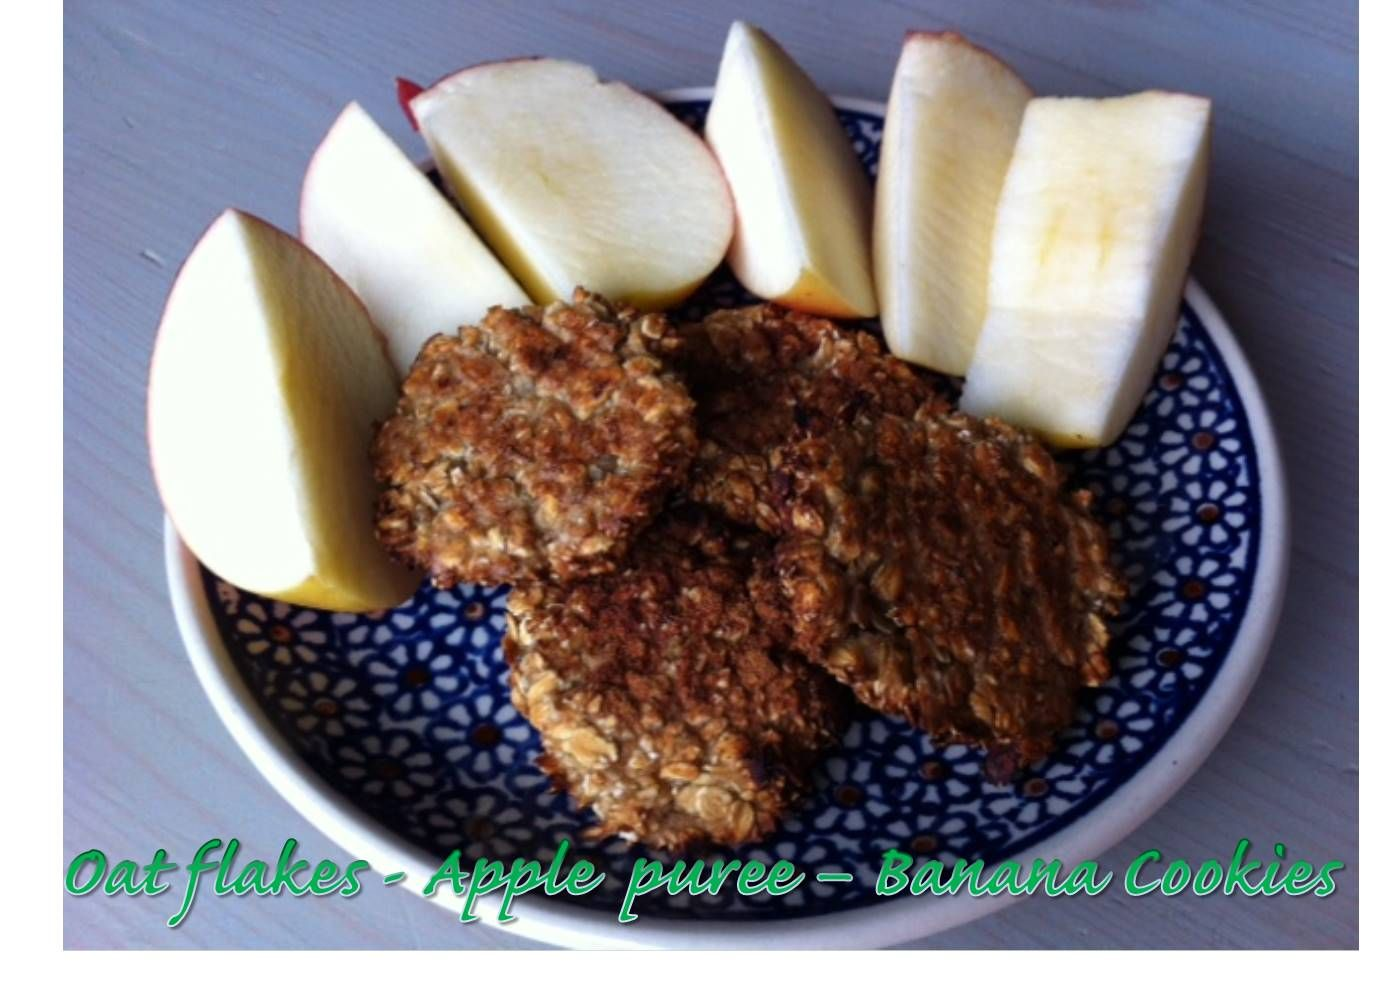 How about homemade oat-cookies for breakfast? Three main ingredients: oat flakes, apple puree and banana; flavored with cinnamon. Mixed together and baked for 30 min in 180°C. http://glutenfreelady.nl/oat-cookies/